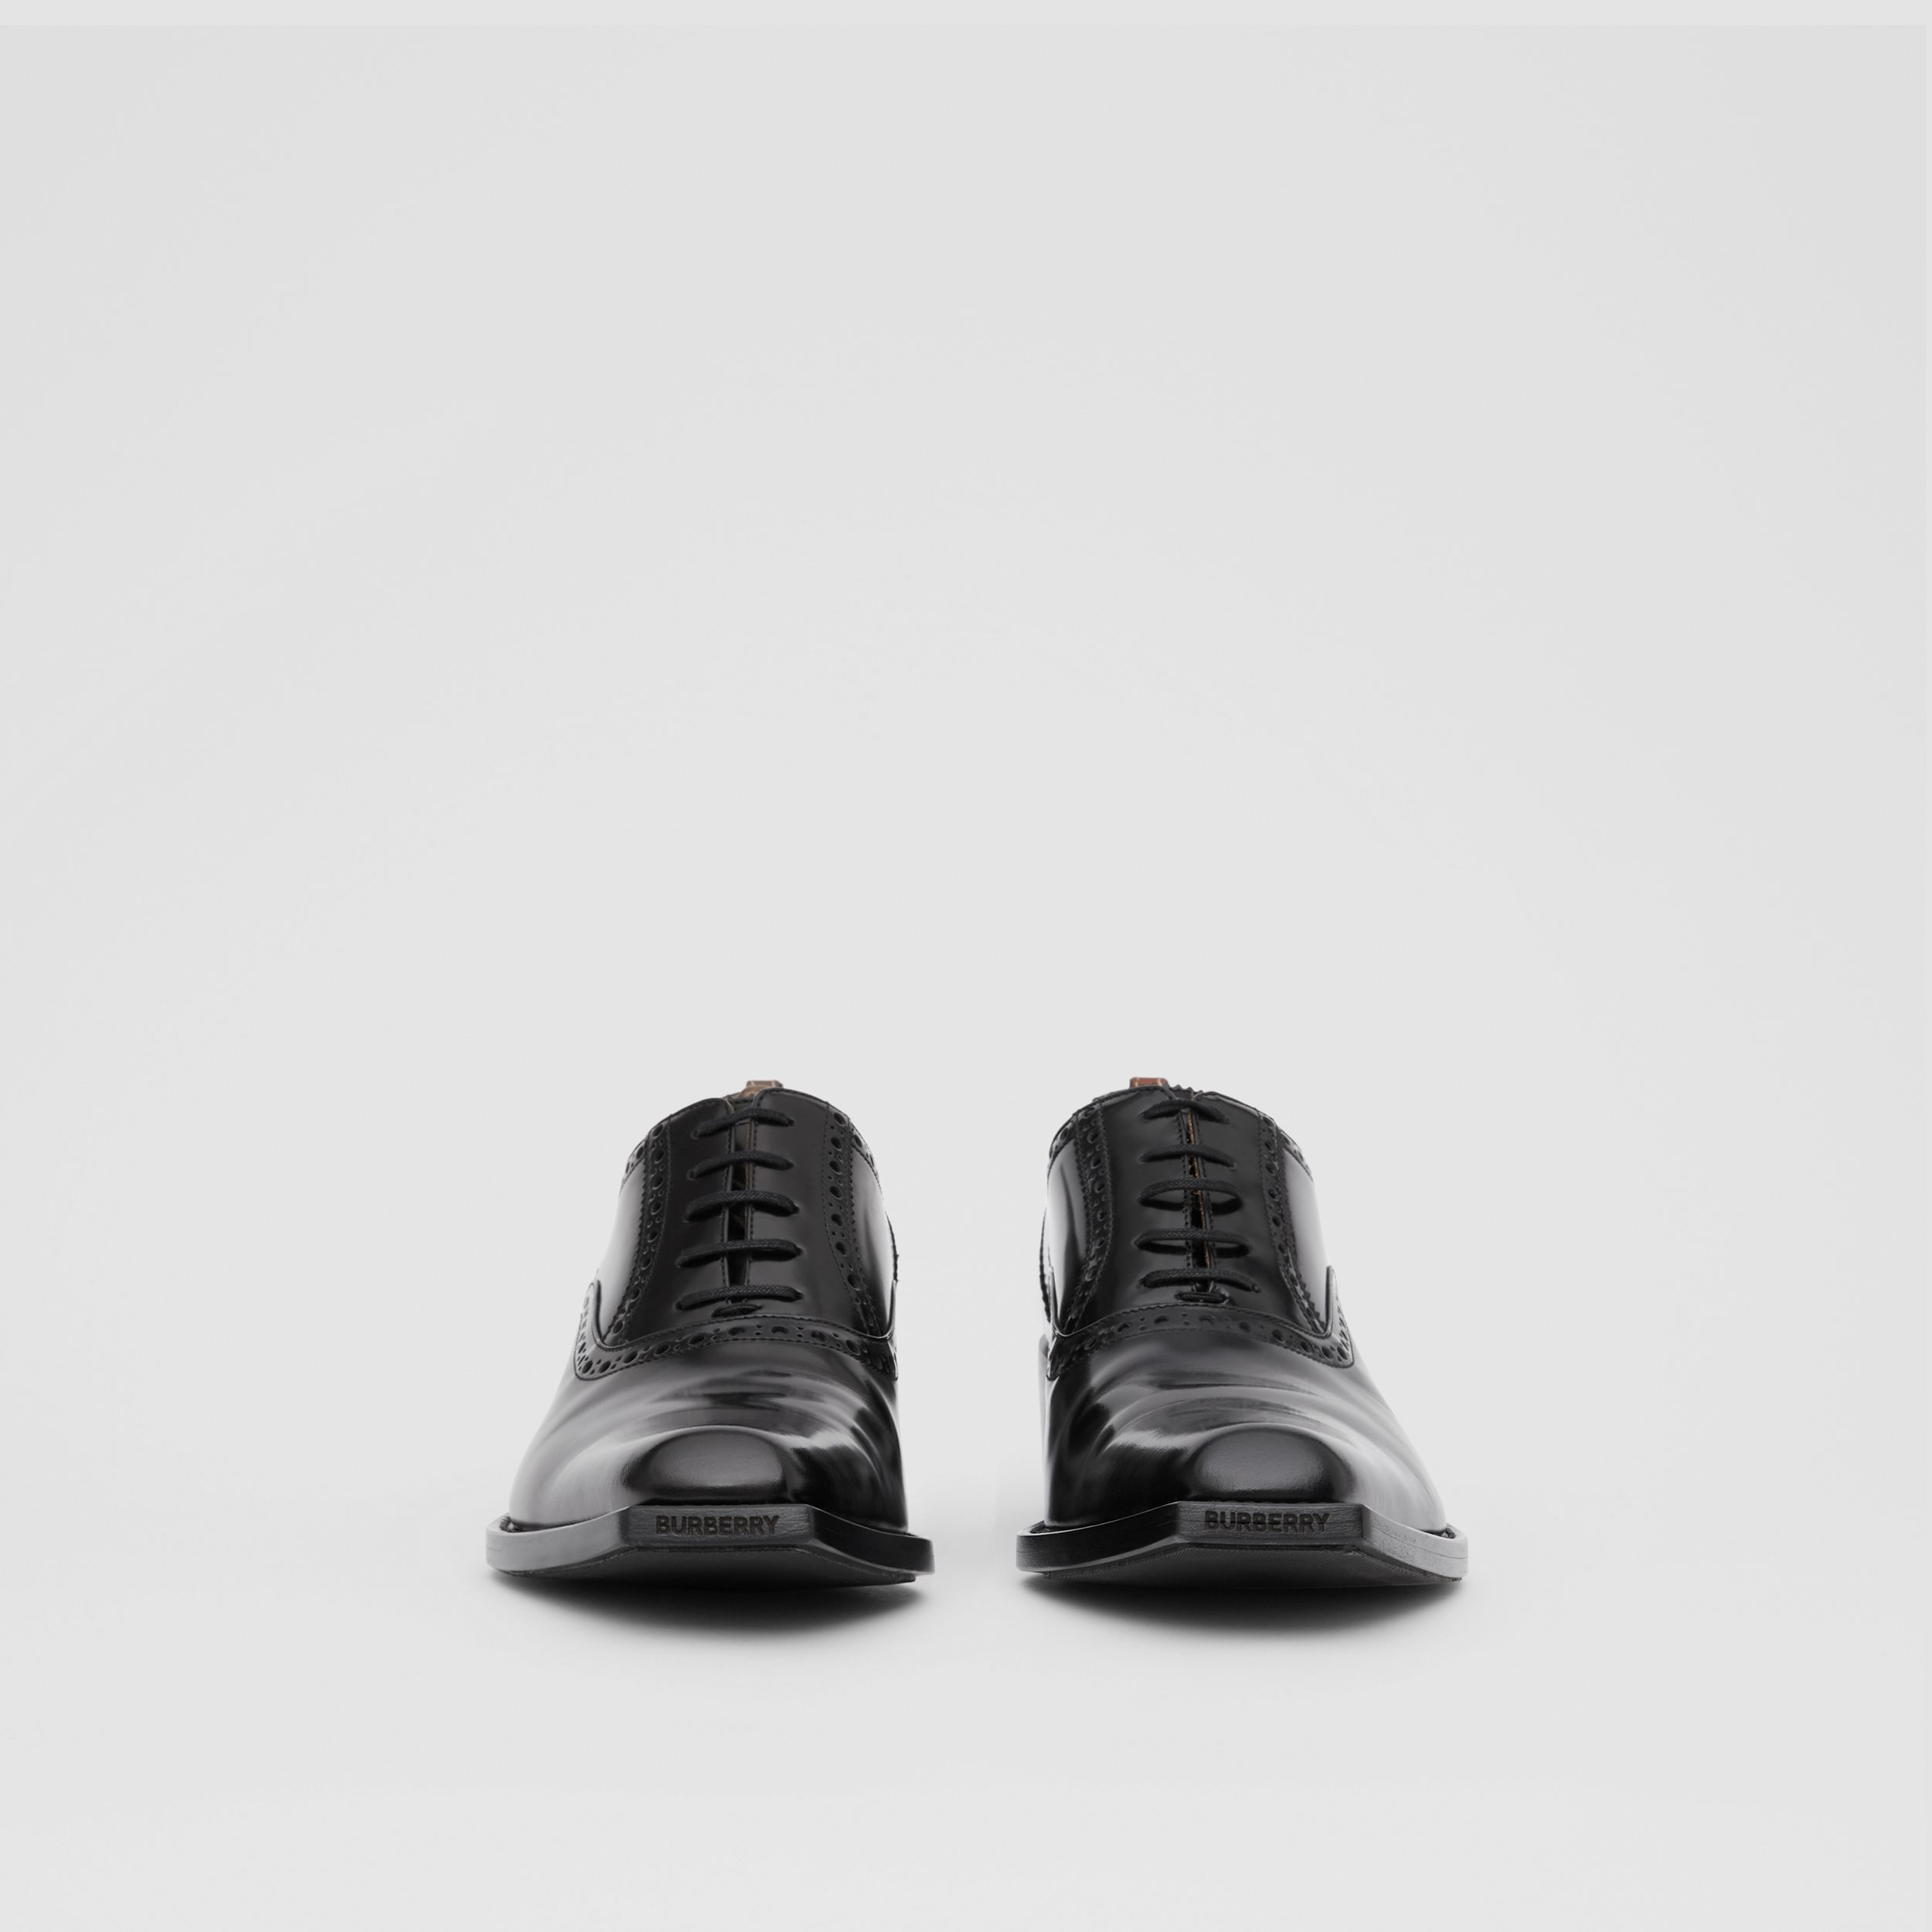 D-ring Detail Leather Heeled Oxford Brogues in Black | Burberry - 4